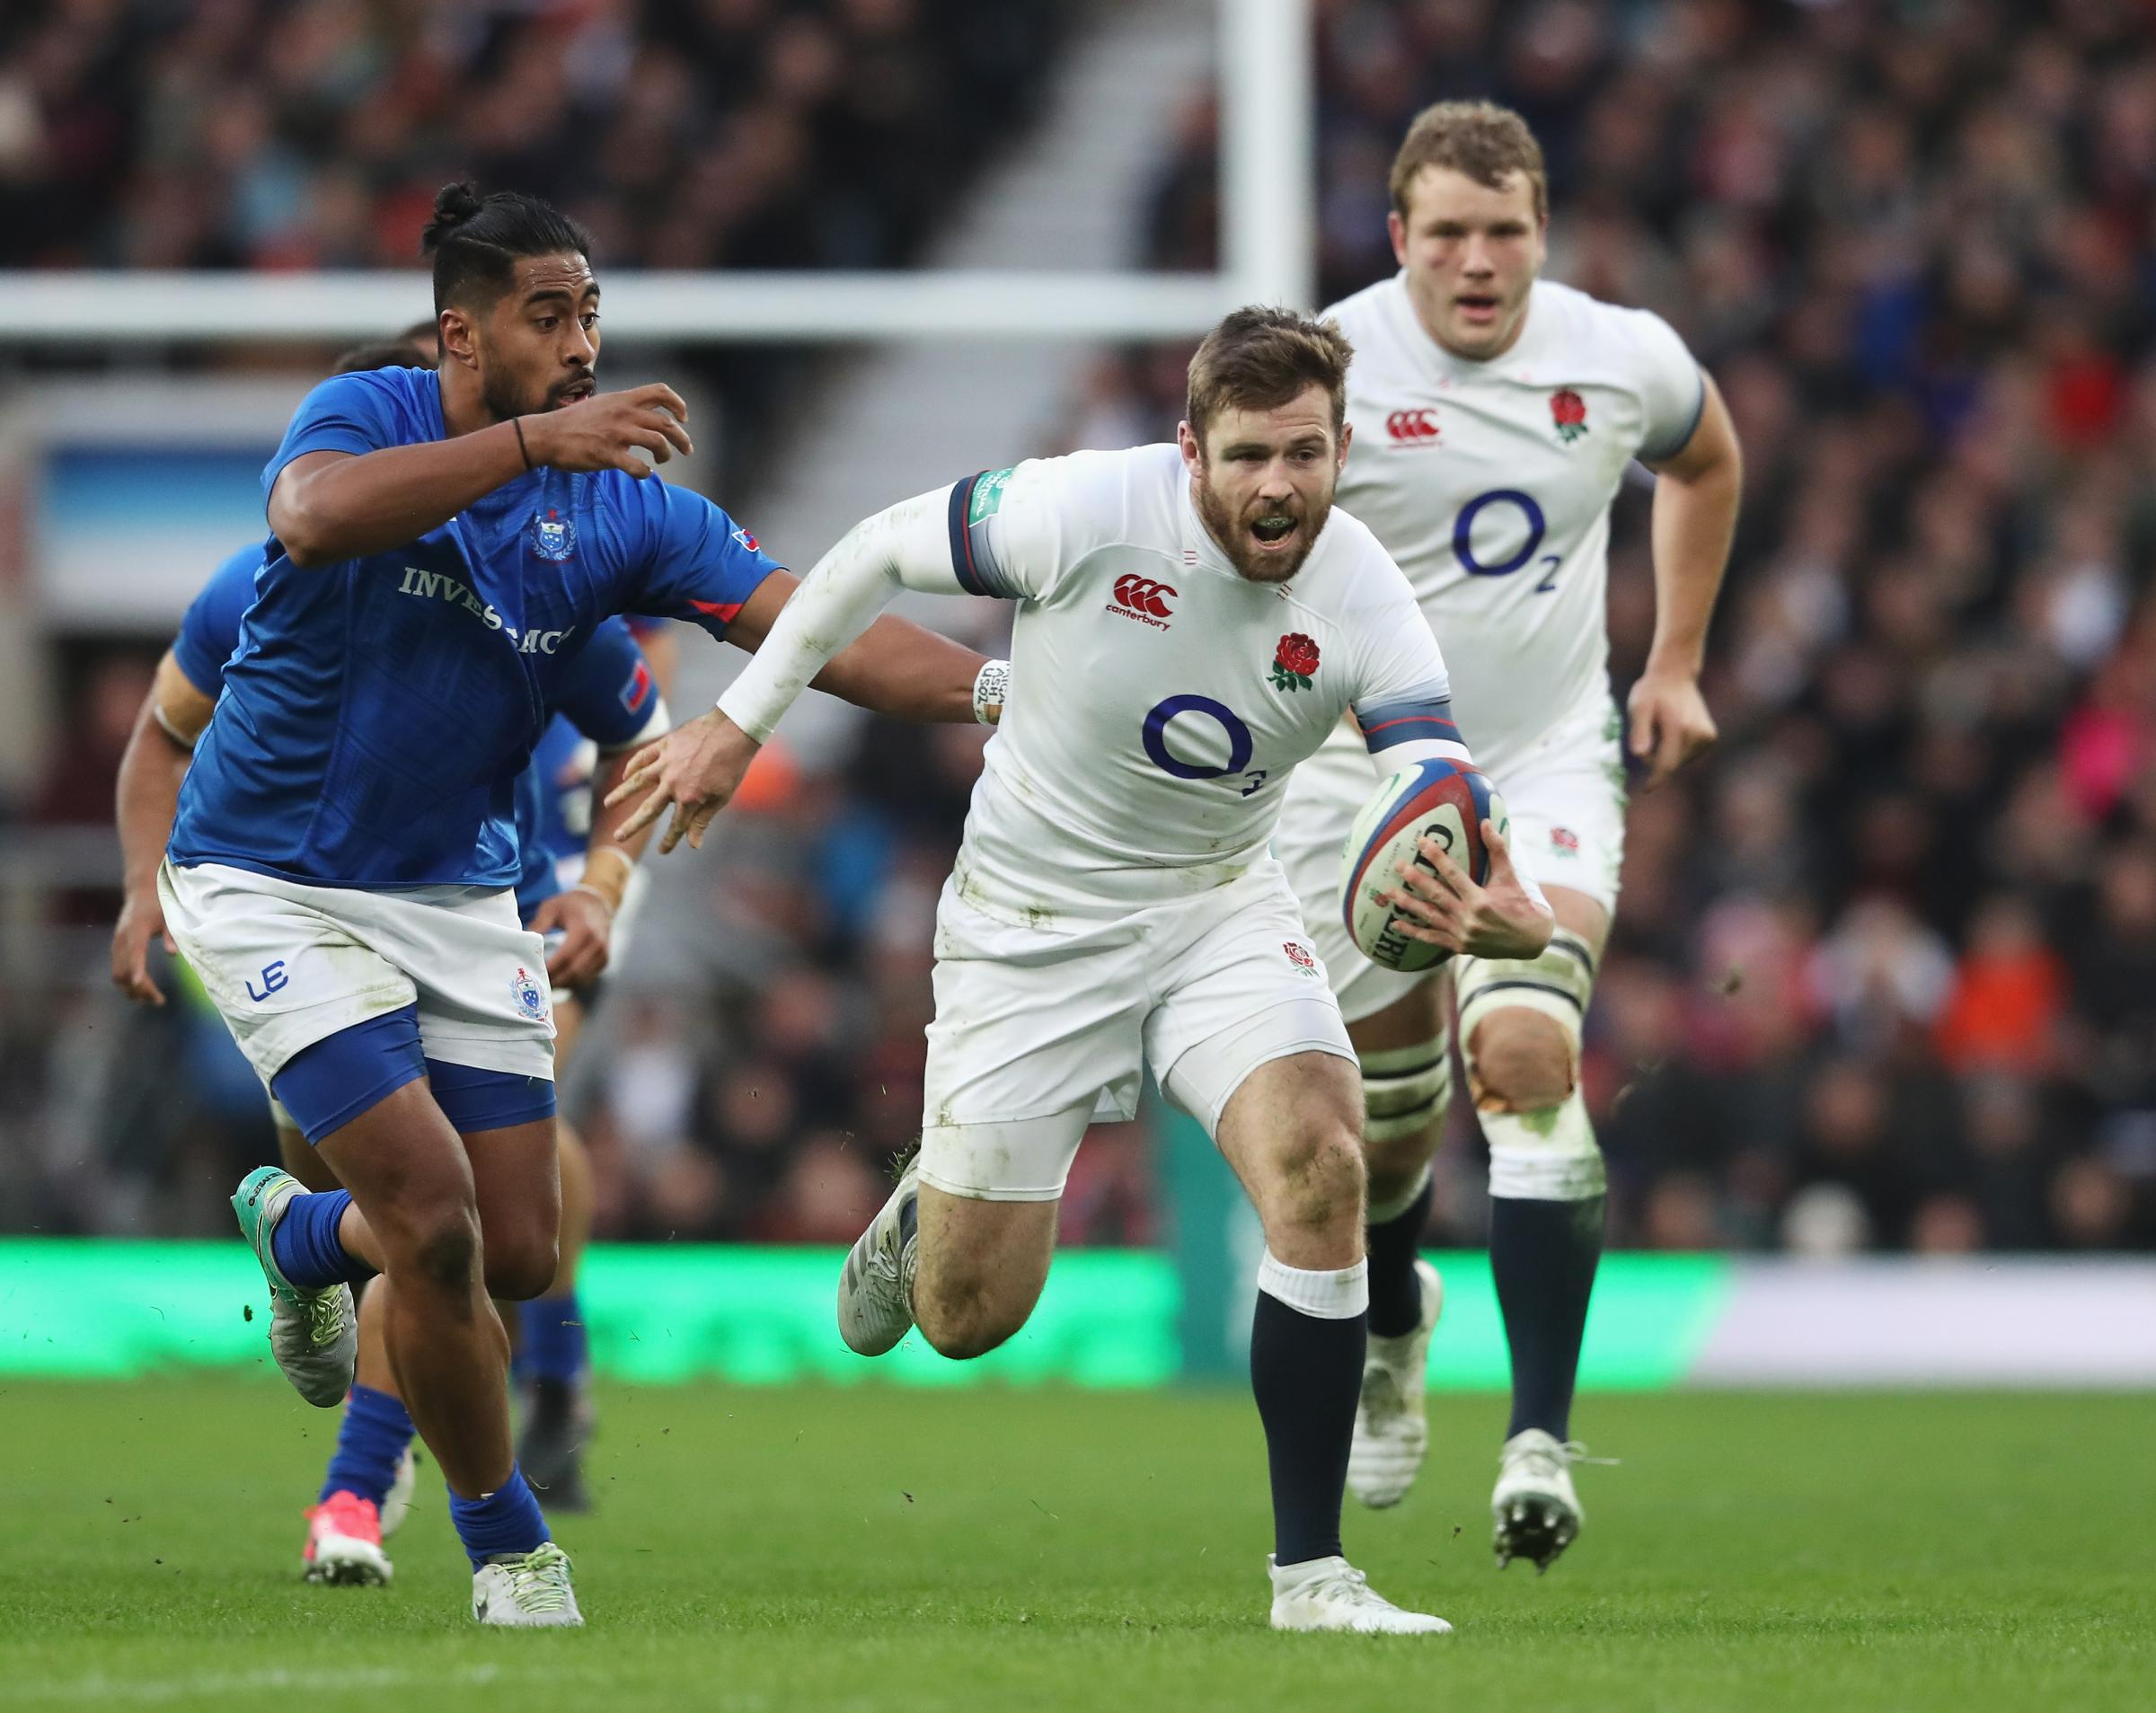 Elliot Daly in action for England at Twickenham last weekend. Picture: RFU Collection via Getty Images.